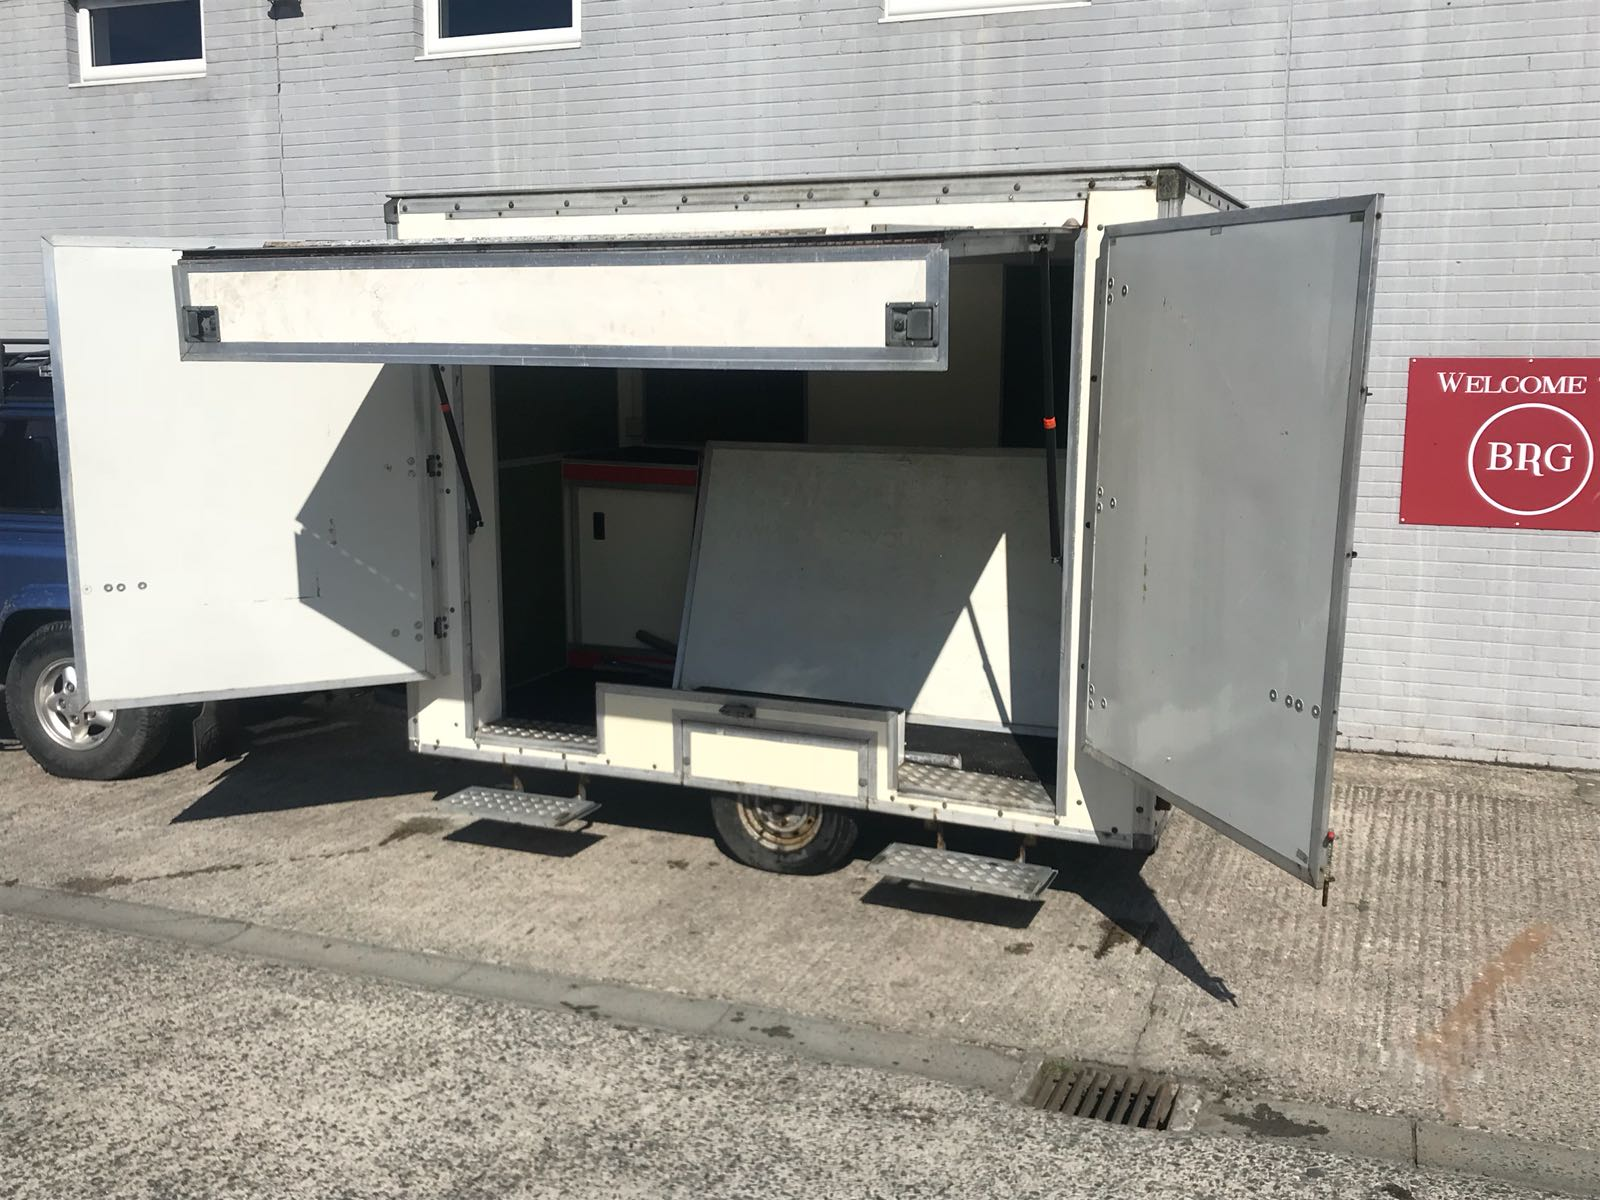 Advertising Corporate Hospitality Trailer 6x10 with fold out awning roof sign and steps